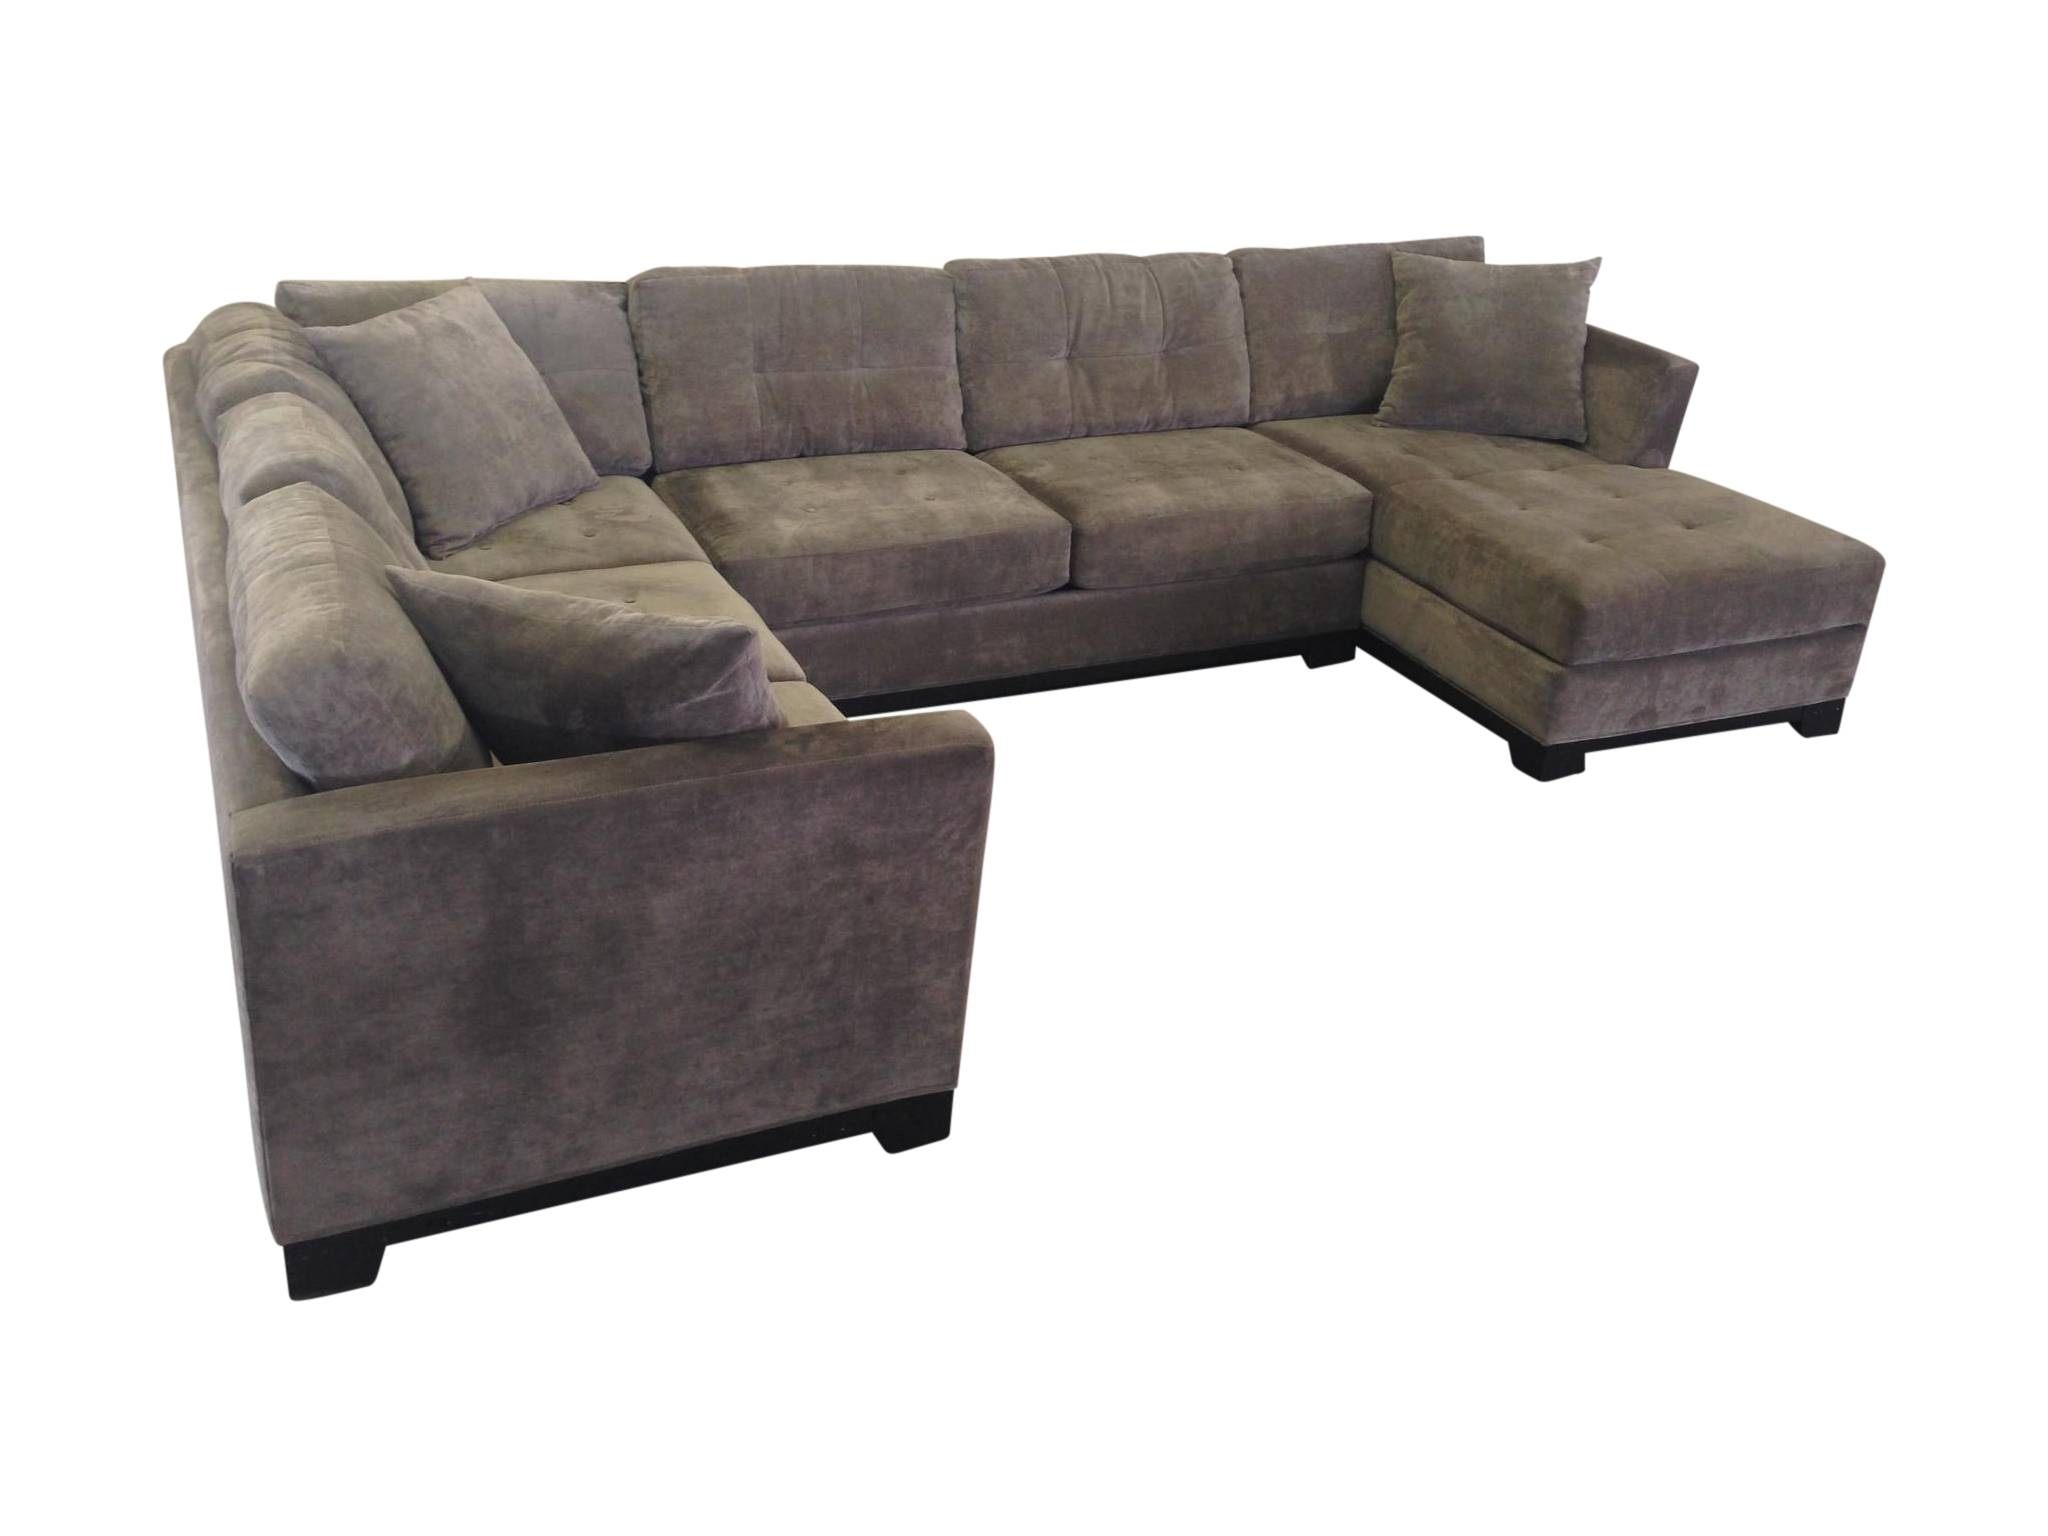 15 inspirations of elliot sectional sofas rh menterarchitects com 3 Piece Sectional with Chaise Black 3 Piece Sectional with Chaise